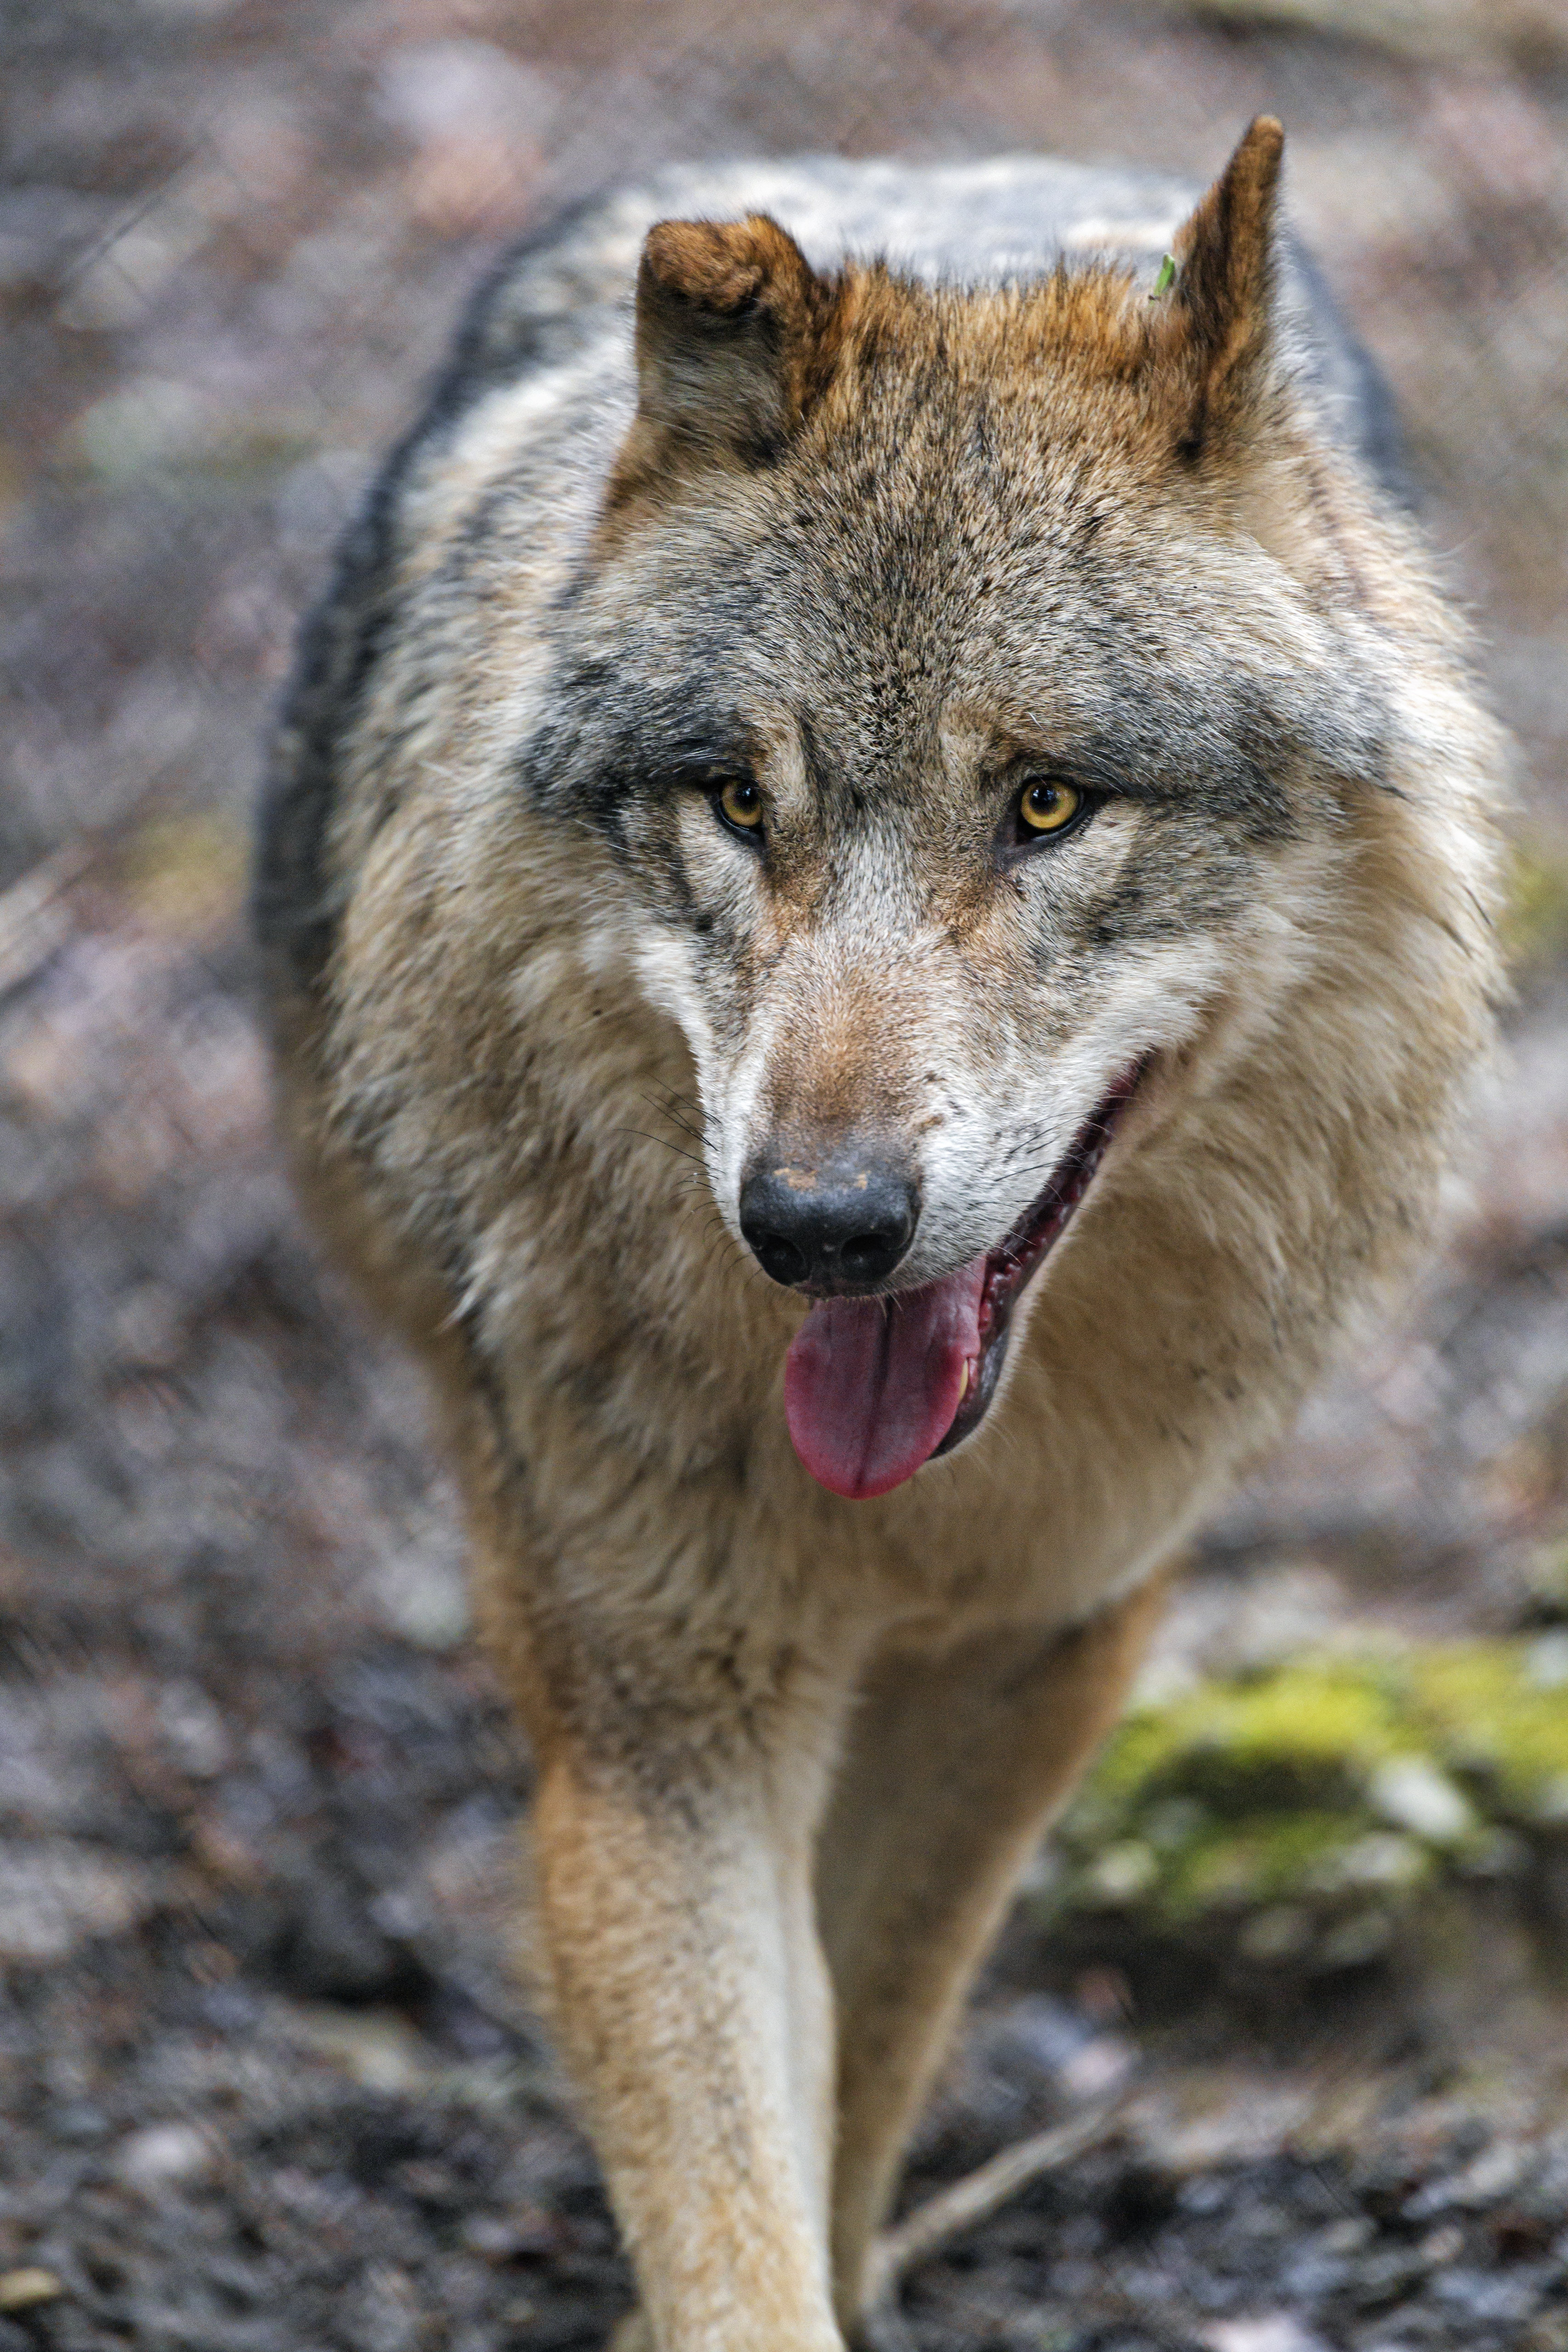 112707 download wallpaper Animals, Wolf, Predator, Protruding Tongue, Tongue Stuck Out, Sight, Opinion screensavers and pictures for free